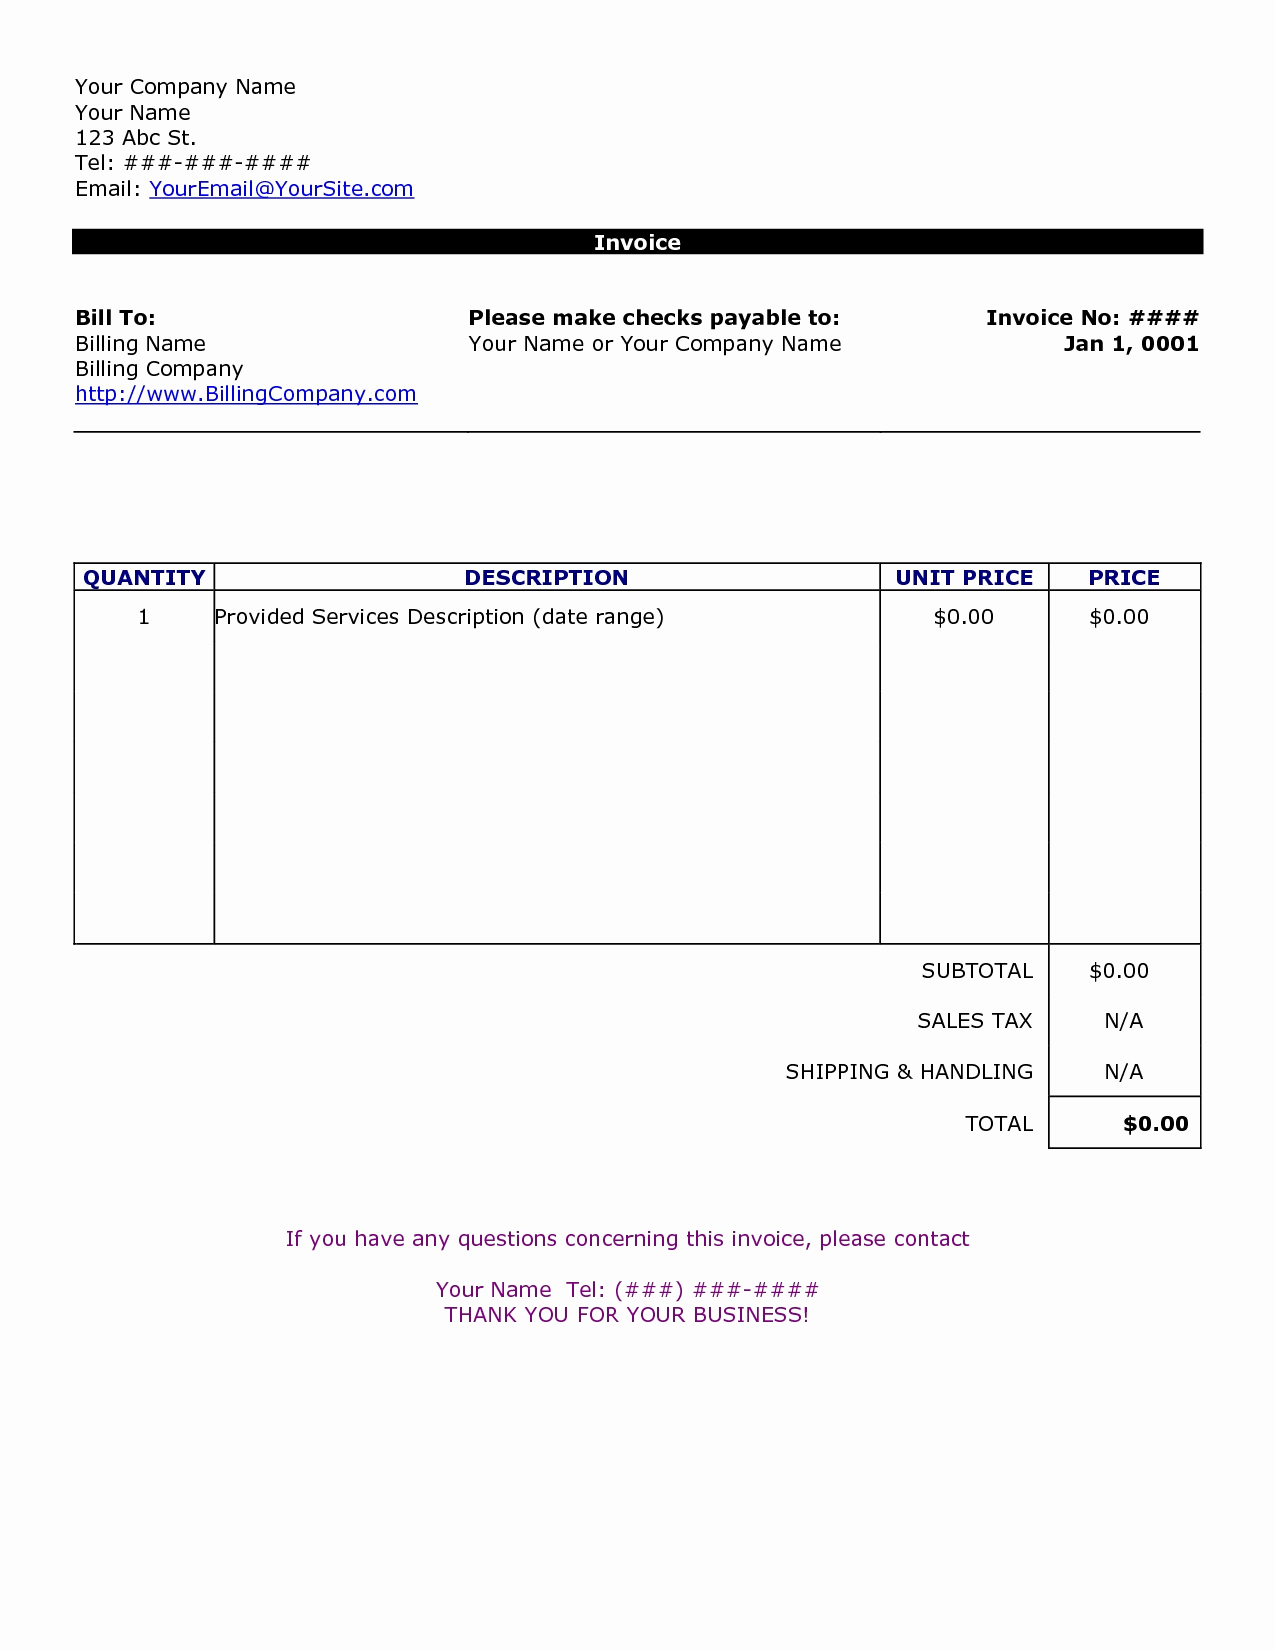 Word Document Invoice Template Beautiful Word Document Invoice Template